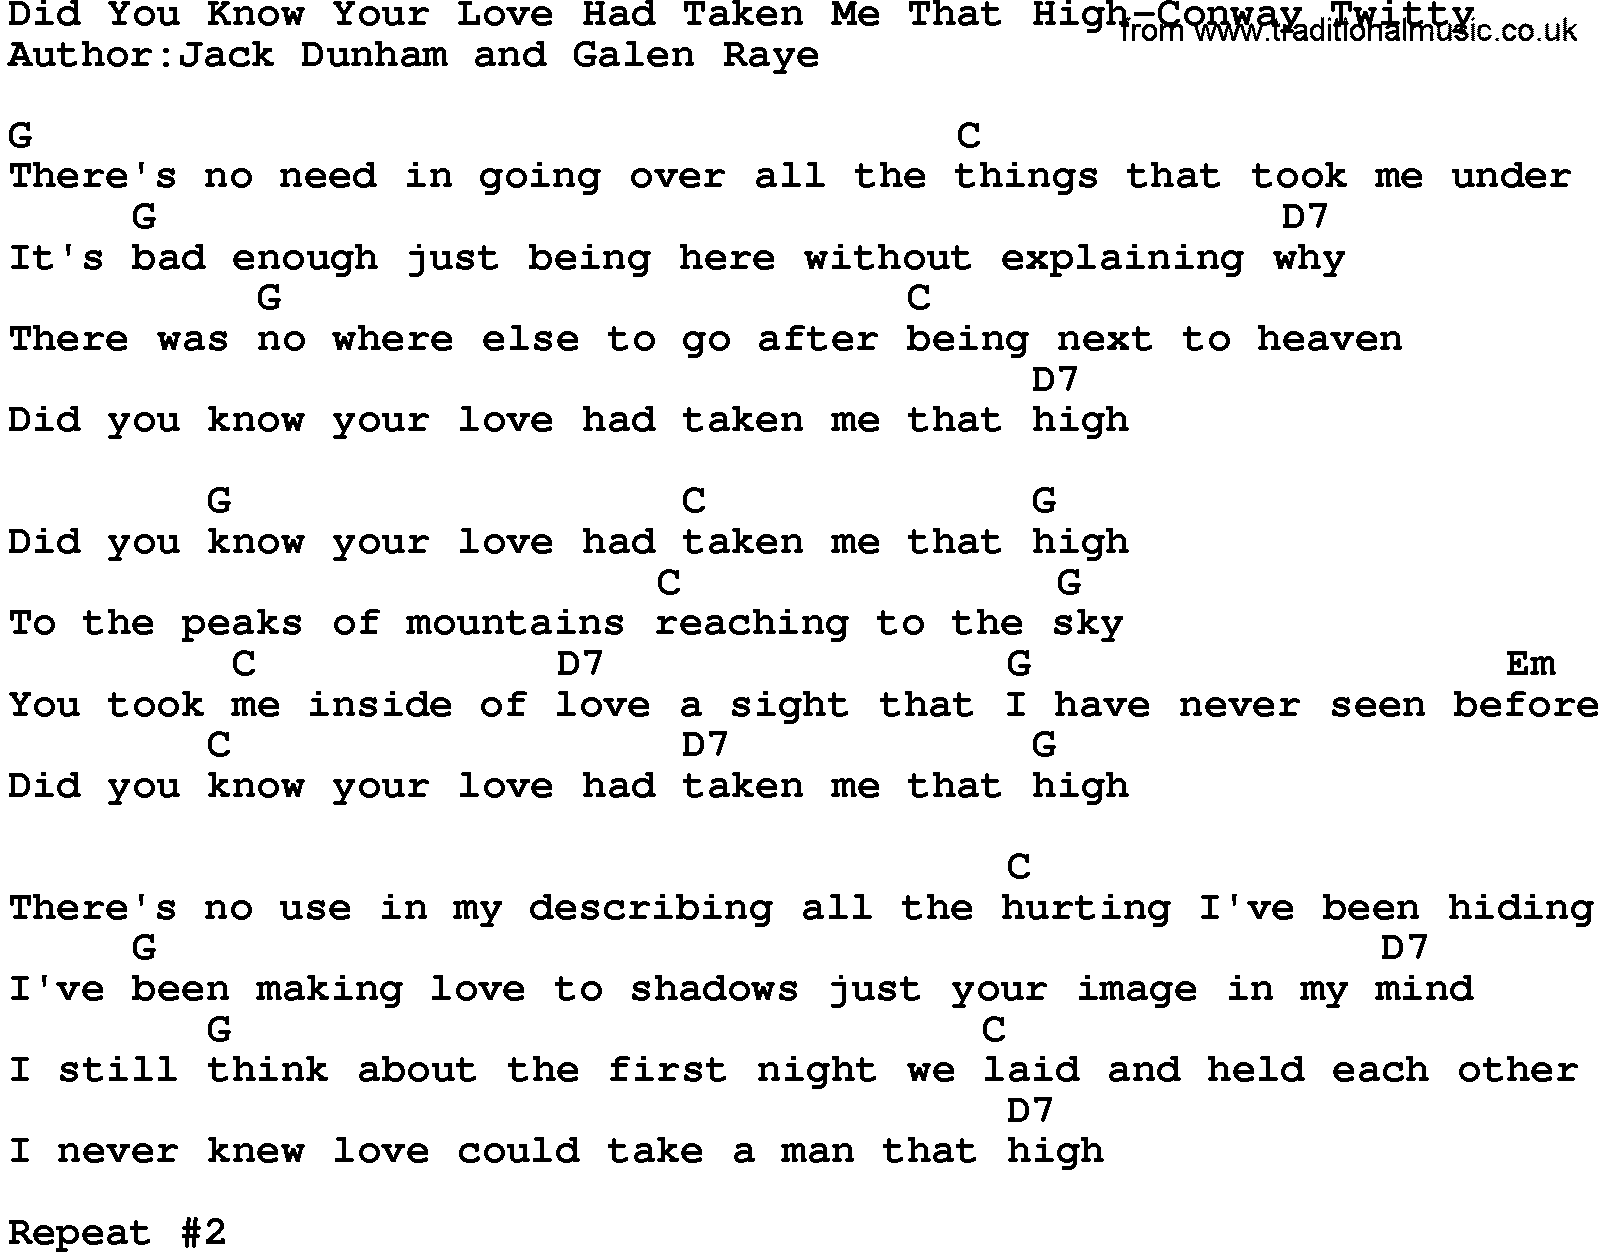 photo about Mary Did You Know Lyrics Printable called Region Tunes:Did Oneself Comprehend Your Take pleasure in Experienced Taken Me That Higher